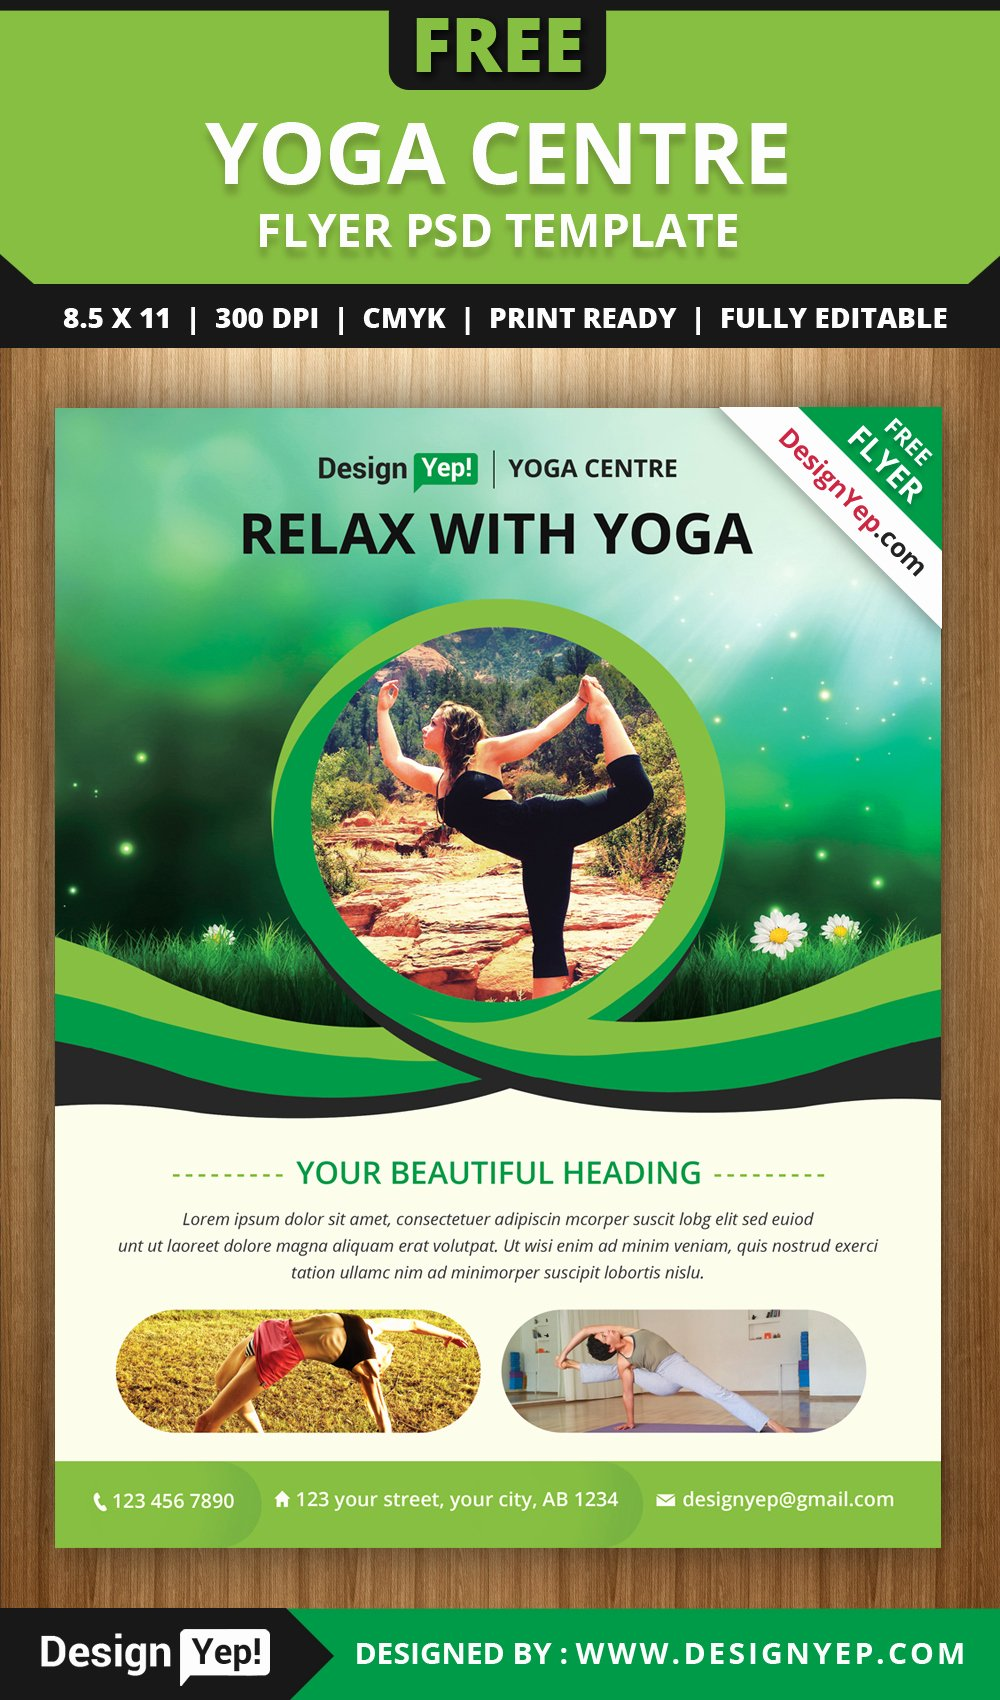 Yoga Flyers Free Template Fresh Free Yoga Flyer Psd Template for Download On Behance